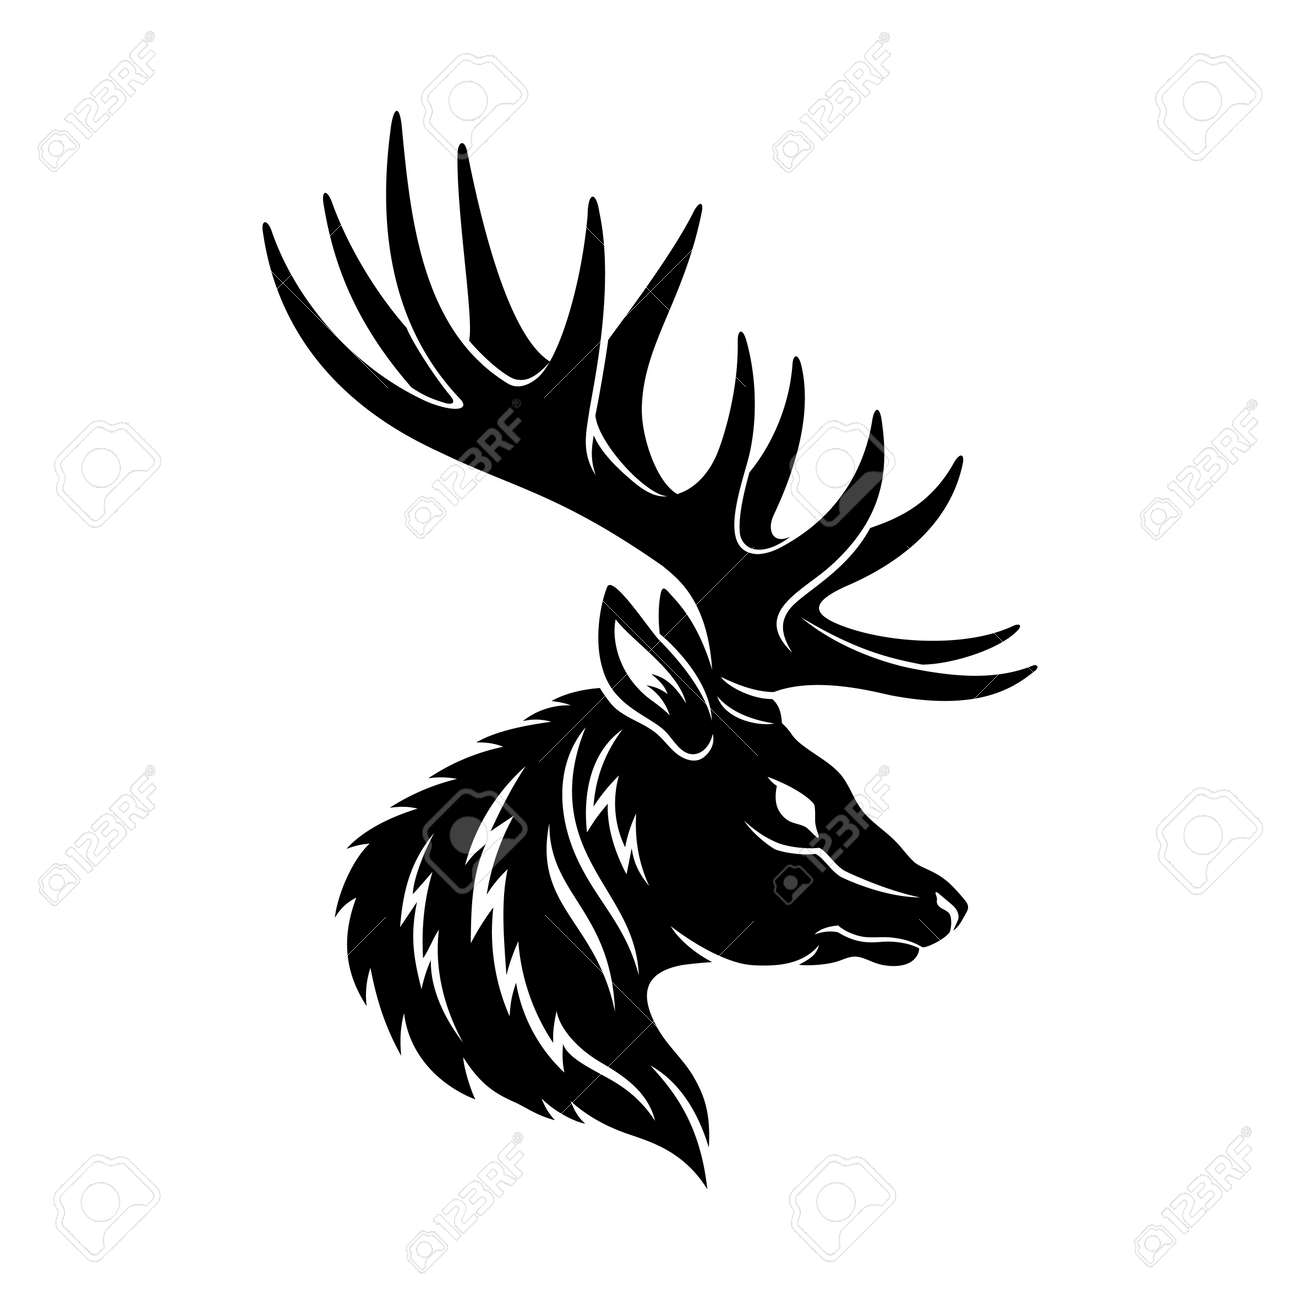 Illustration with deer icon isolated on white background. - 168969173